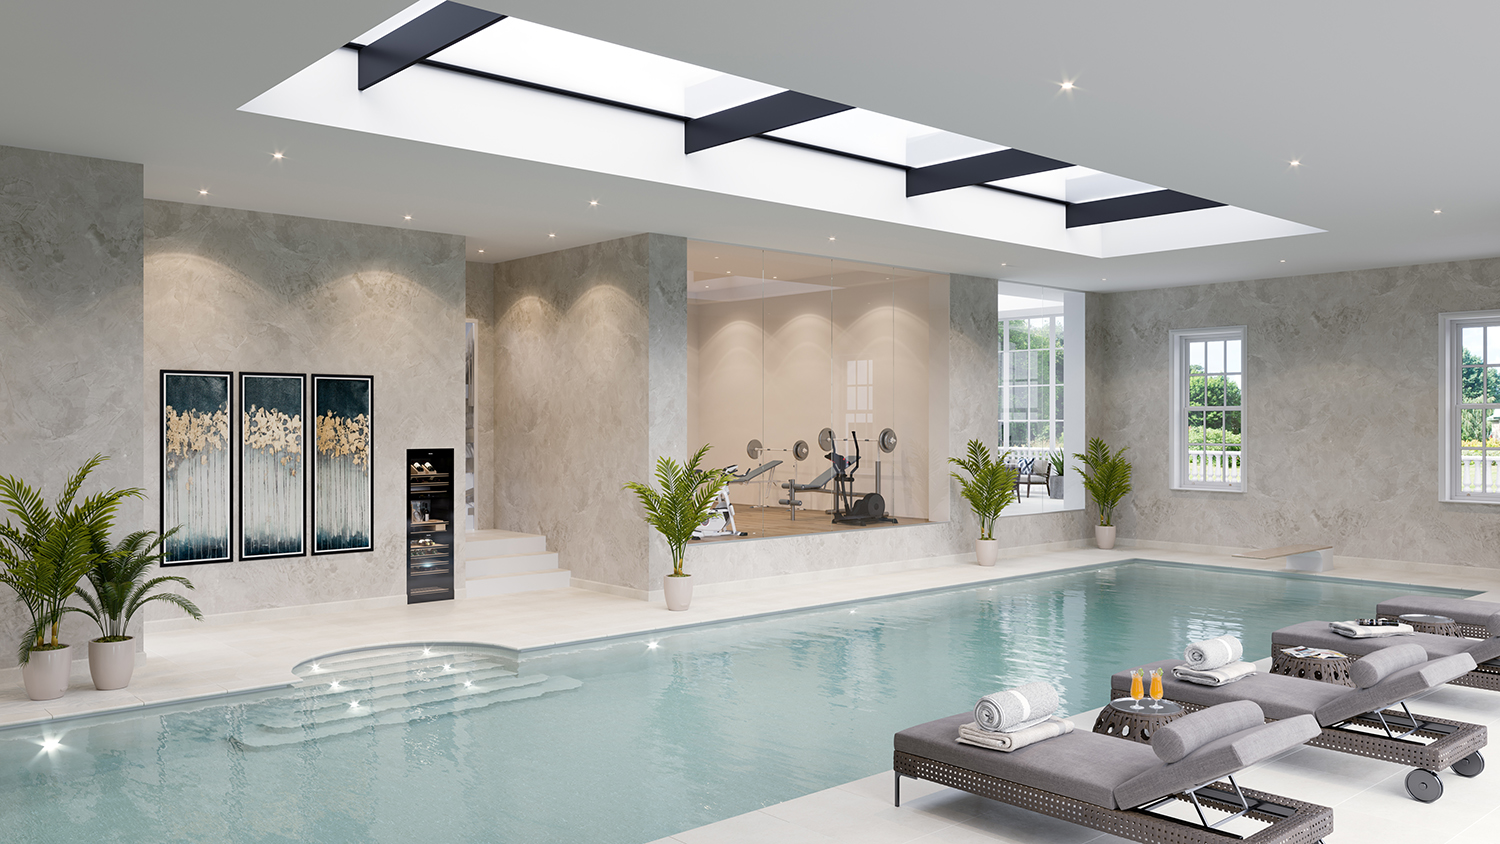 Wentworth virginia water swimming pool design london for Swimming pool design uk